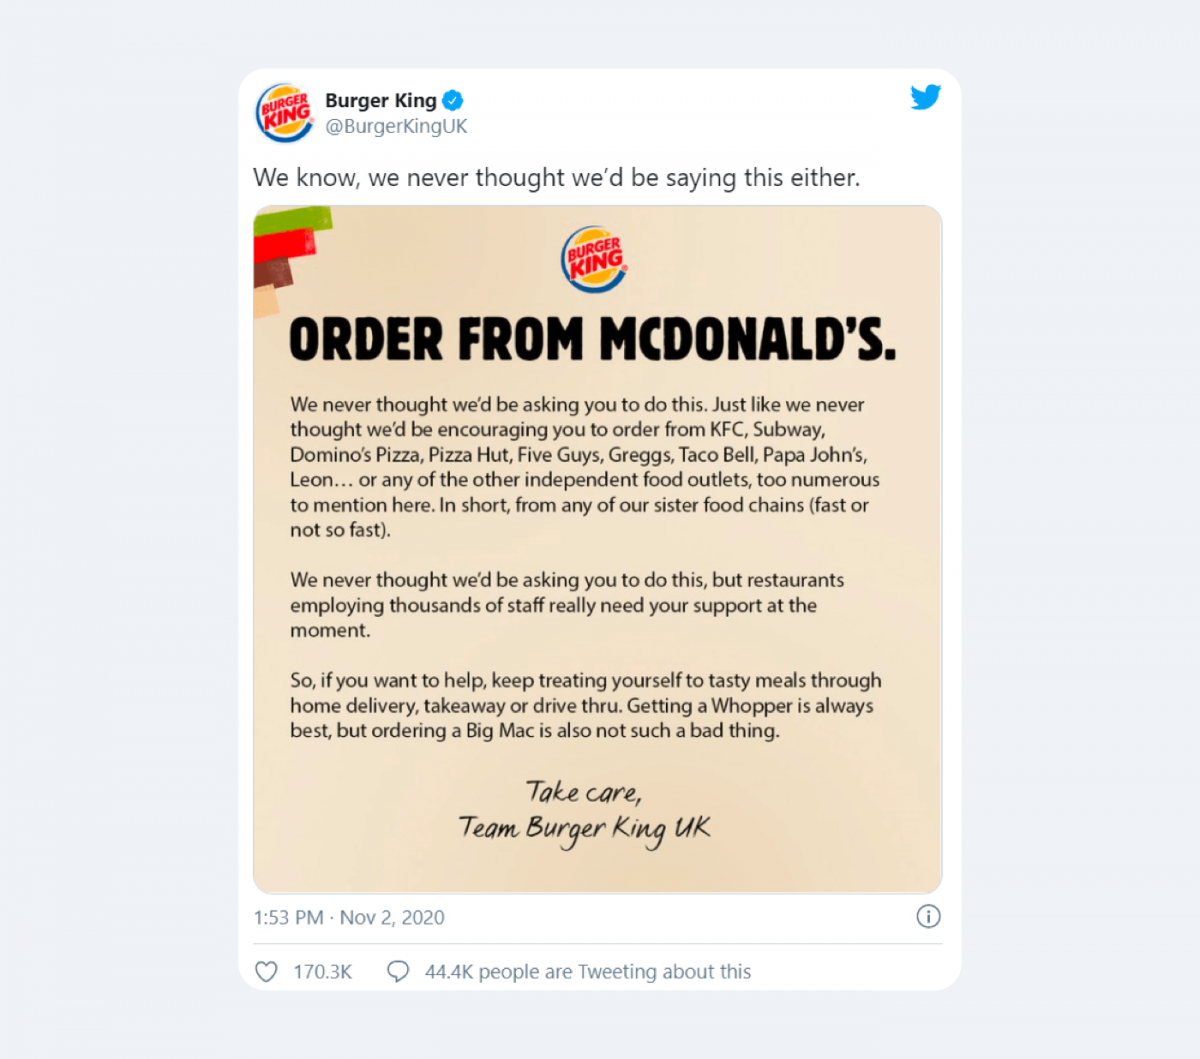 An example of a relationship marketing campaign by Burger King